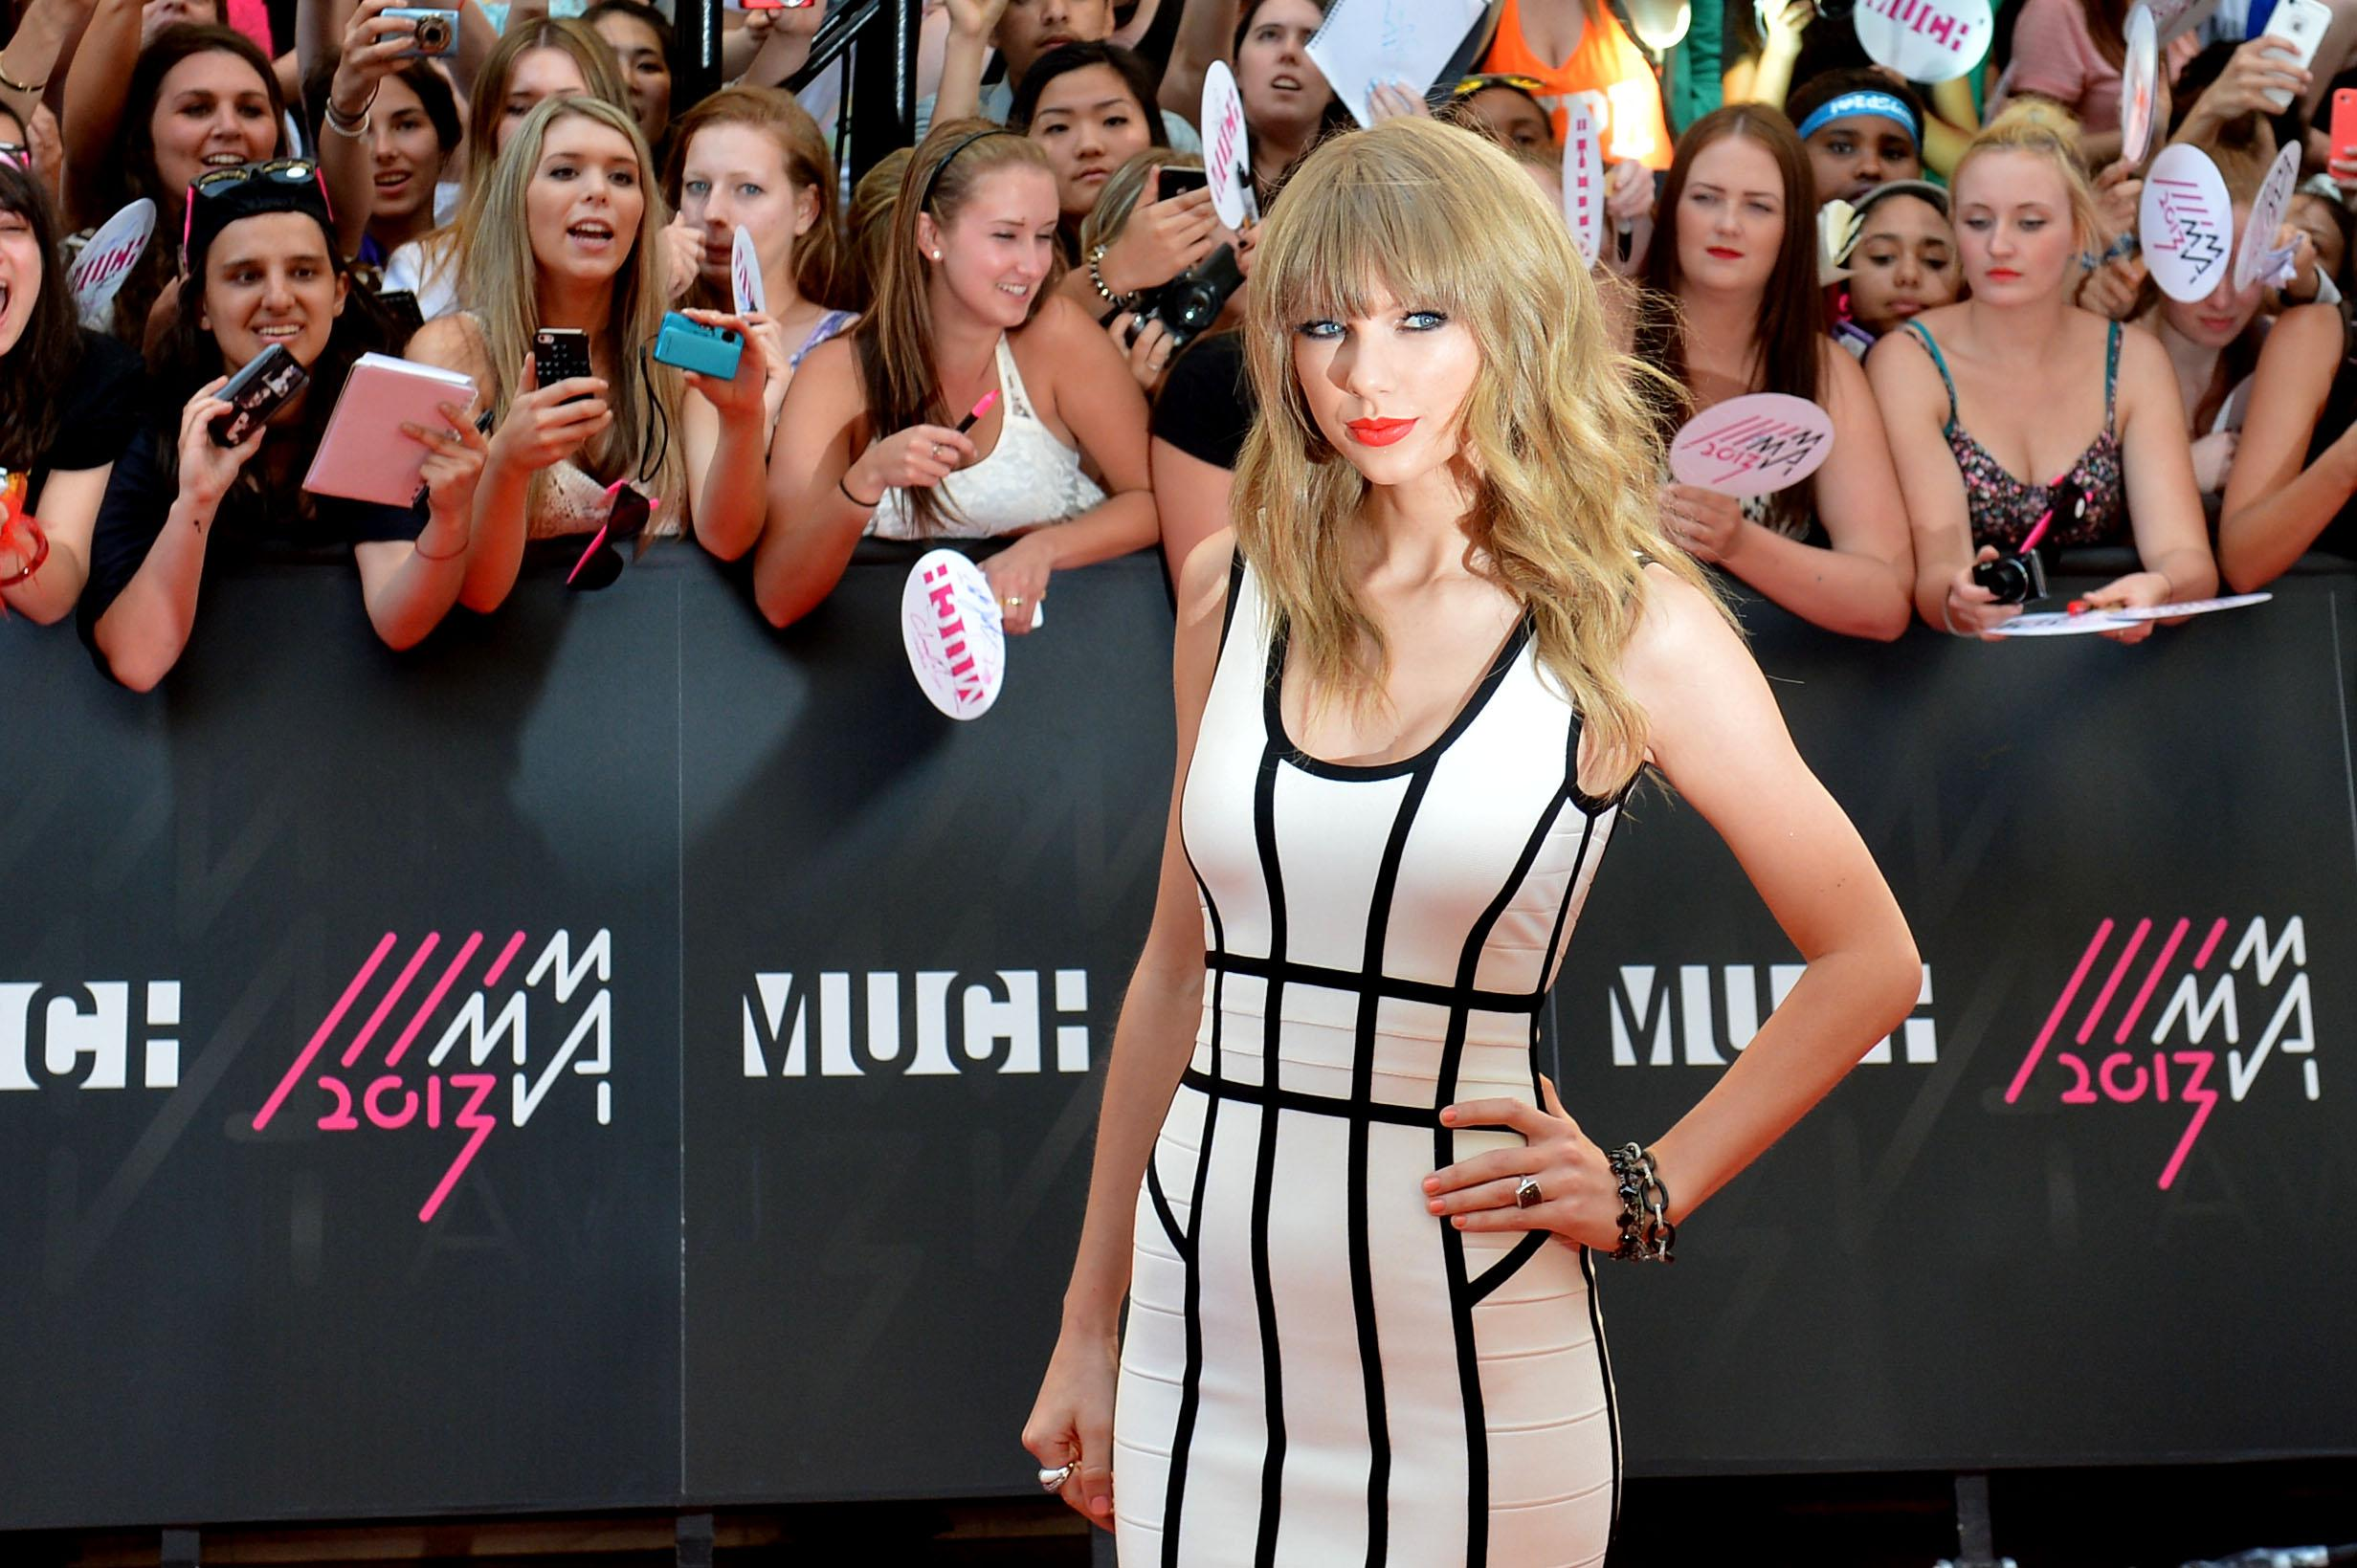 2013 Much Music Video Awards